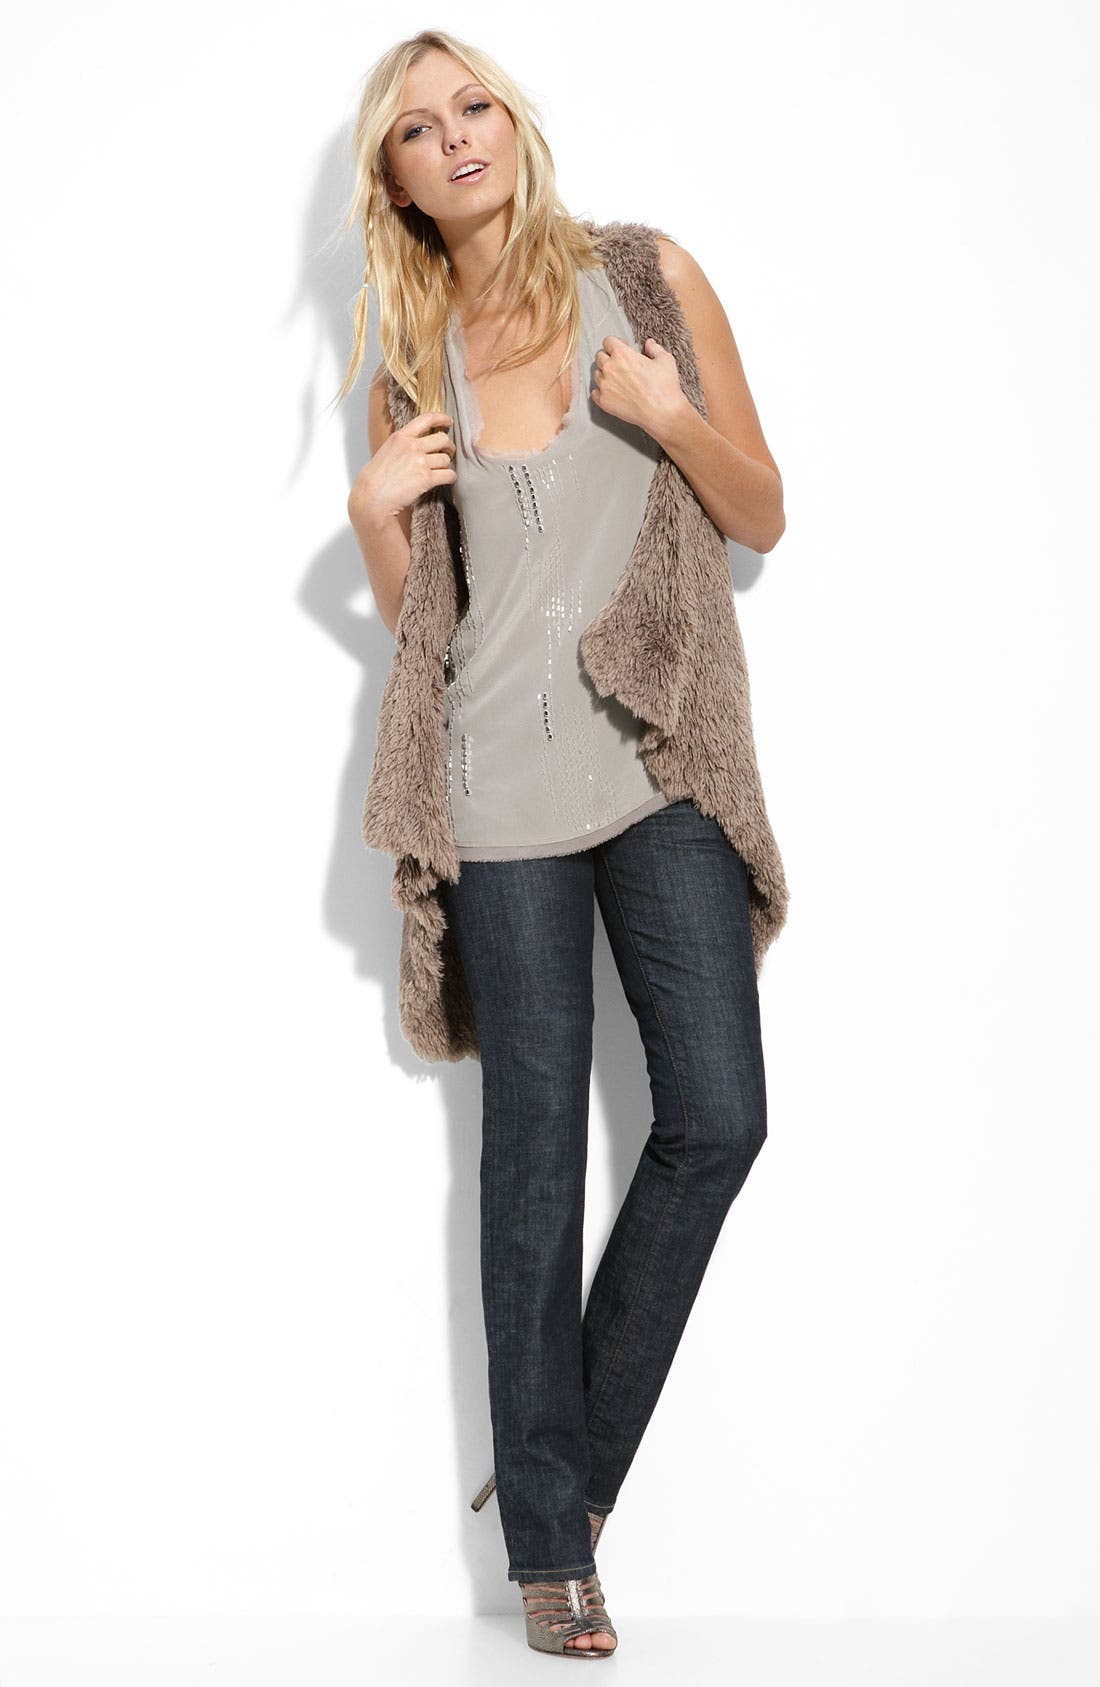 Alternate Image 1 Selected - Pure Sugar Tank & Kensie Faux Fur Vest with Citizens of Humanity Stretch Jeans